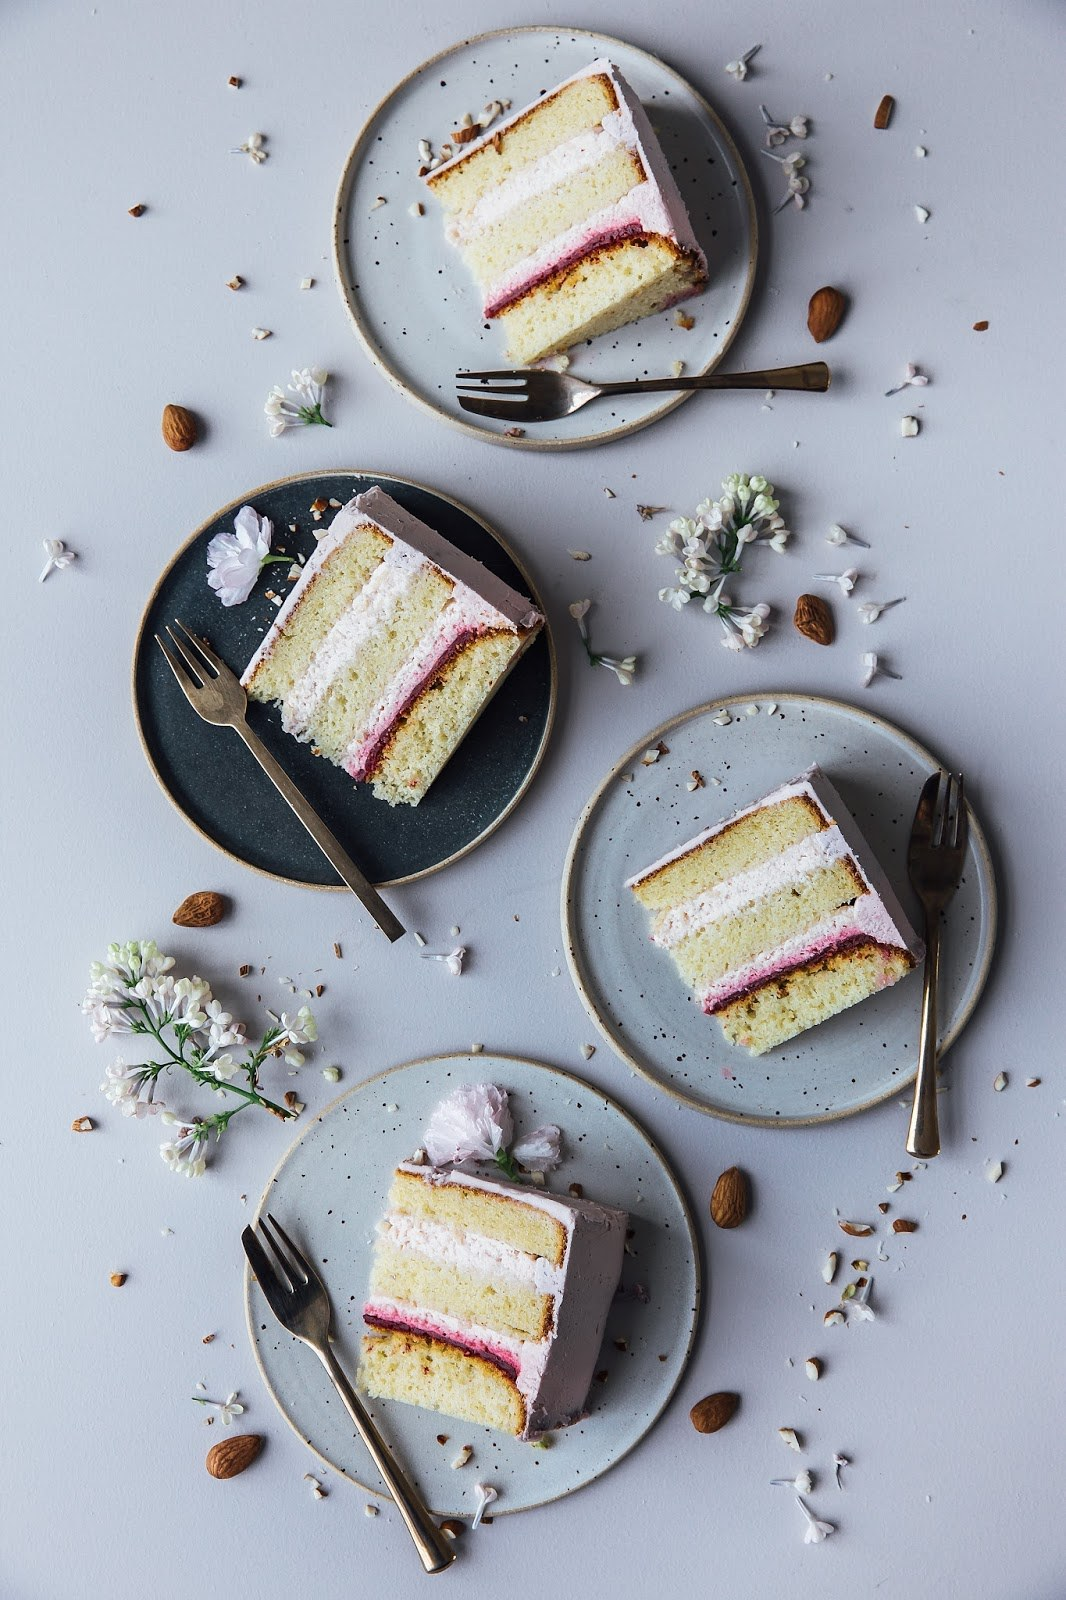 Gluten Free Rhubarb-Raspberry Cake & a Moodboard for Farrow & Ball